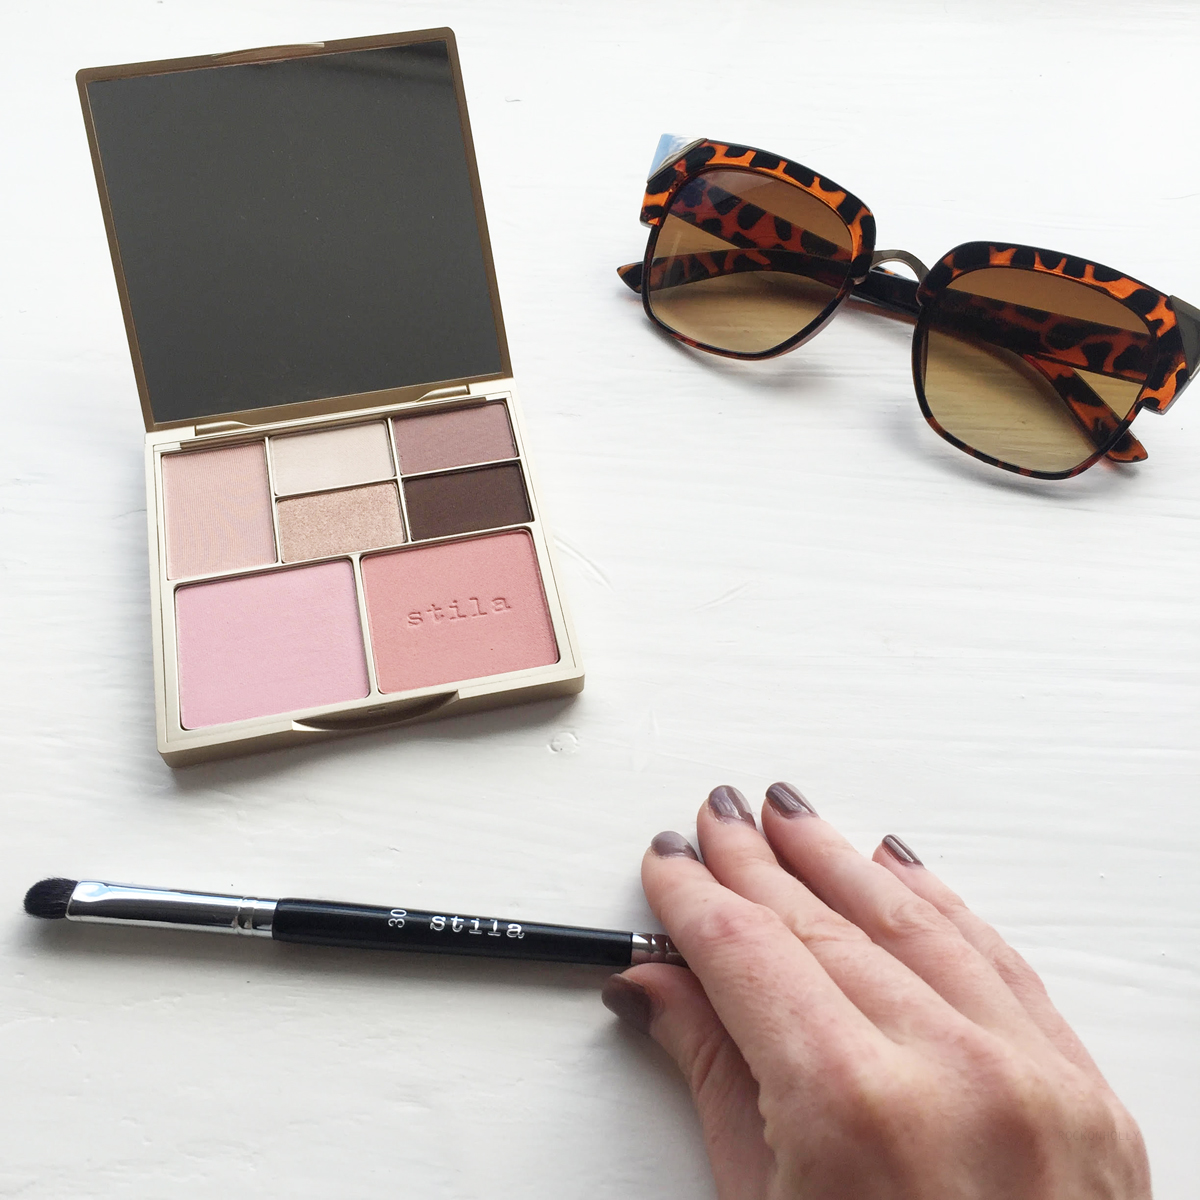 Review of the Stila Perfect Me Palette on the Rock On Holly blog